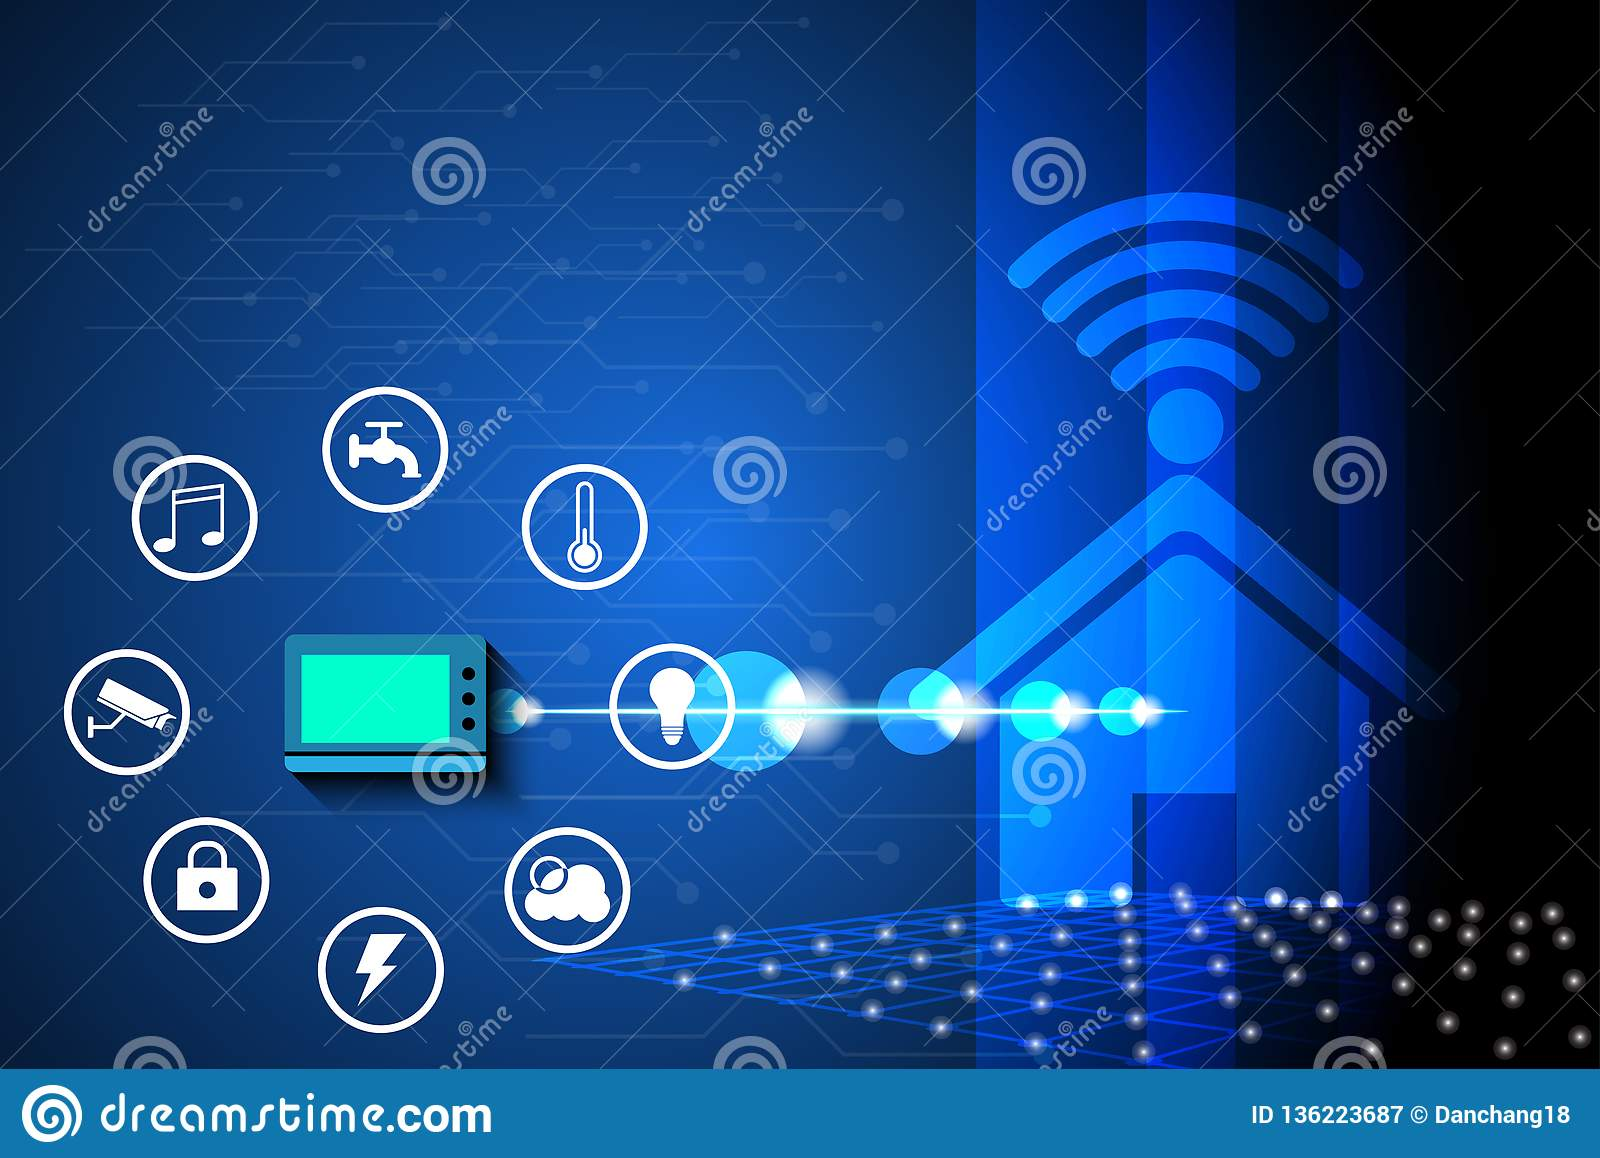 Smart home controlled Public utility network concept use for background.